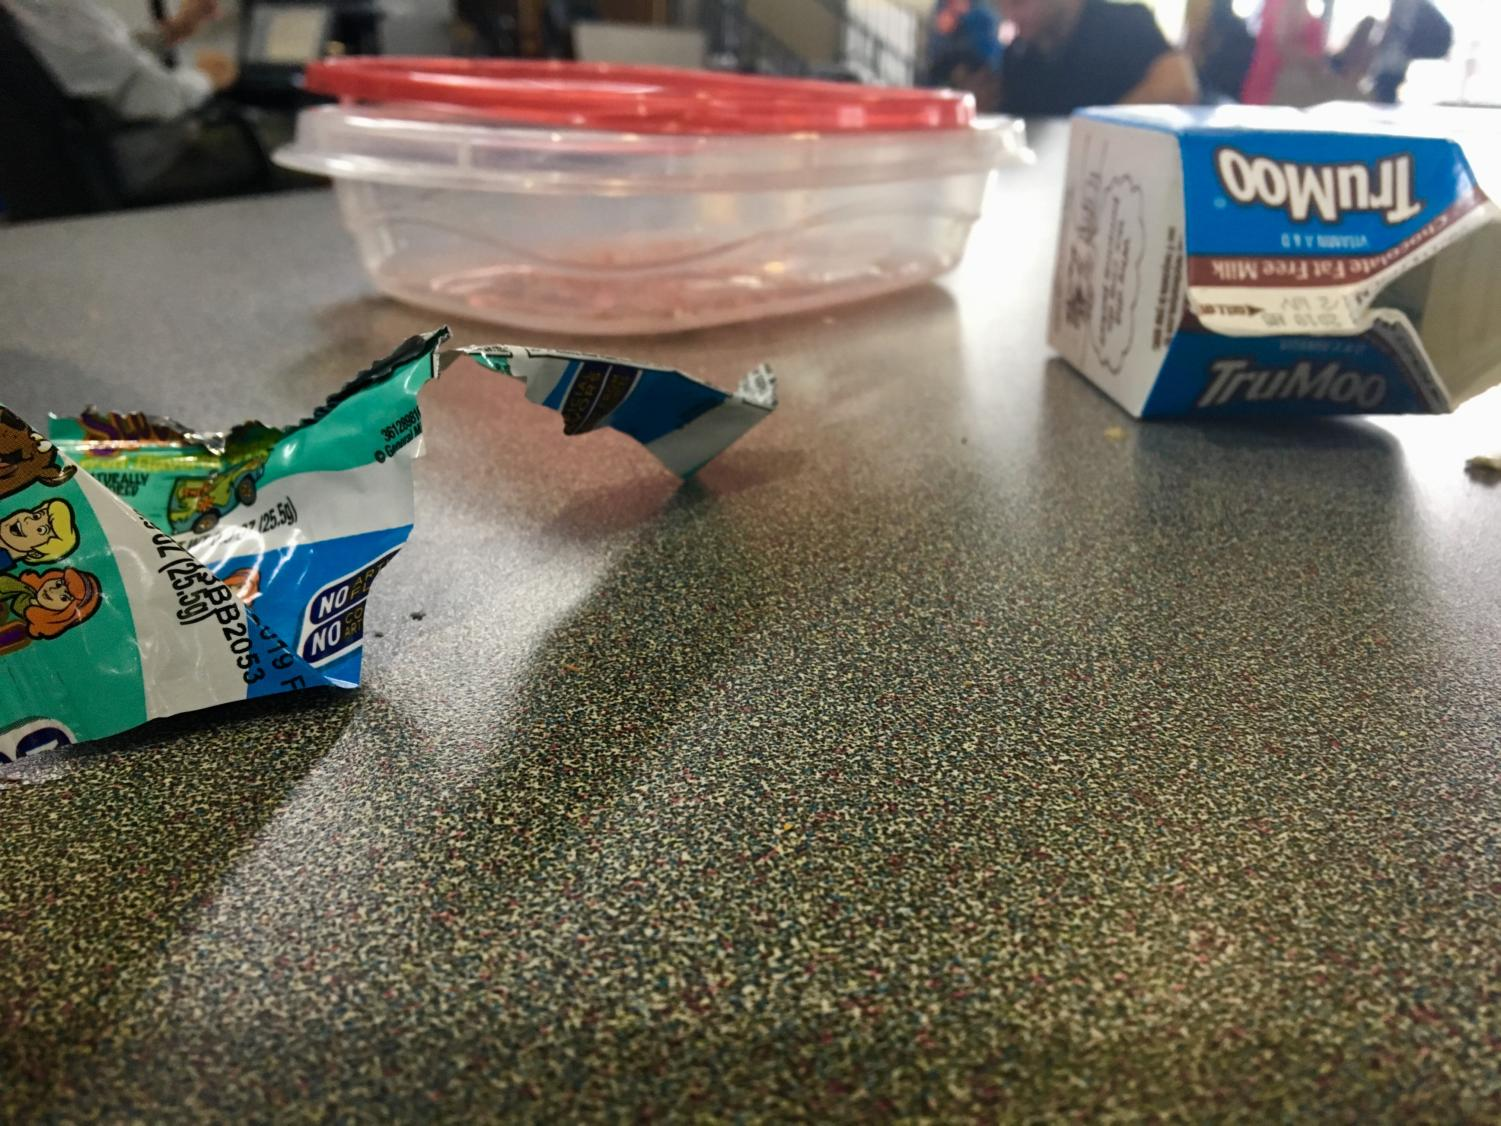 A mess is left on the table during lunch.